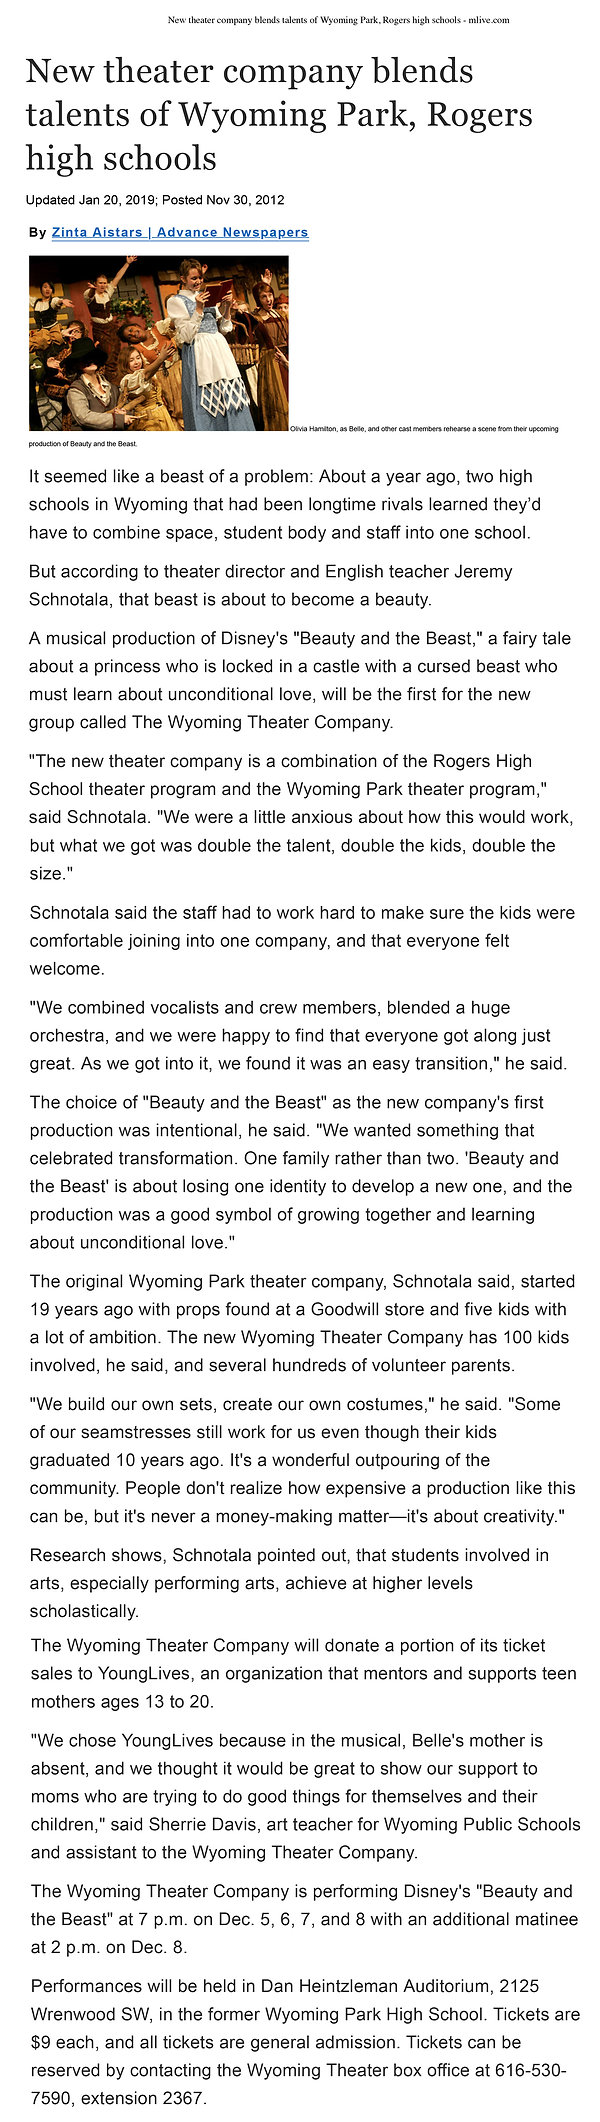 New theater company blends talents of Wy